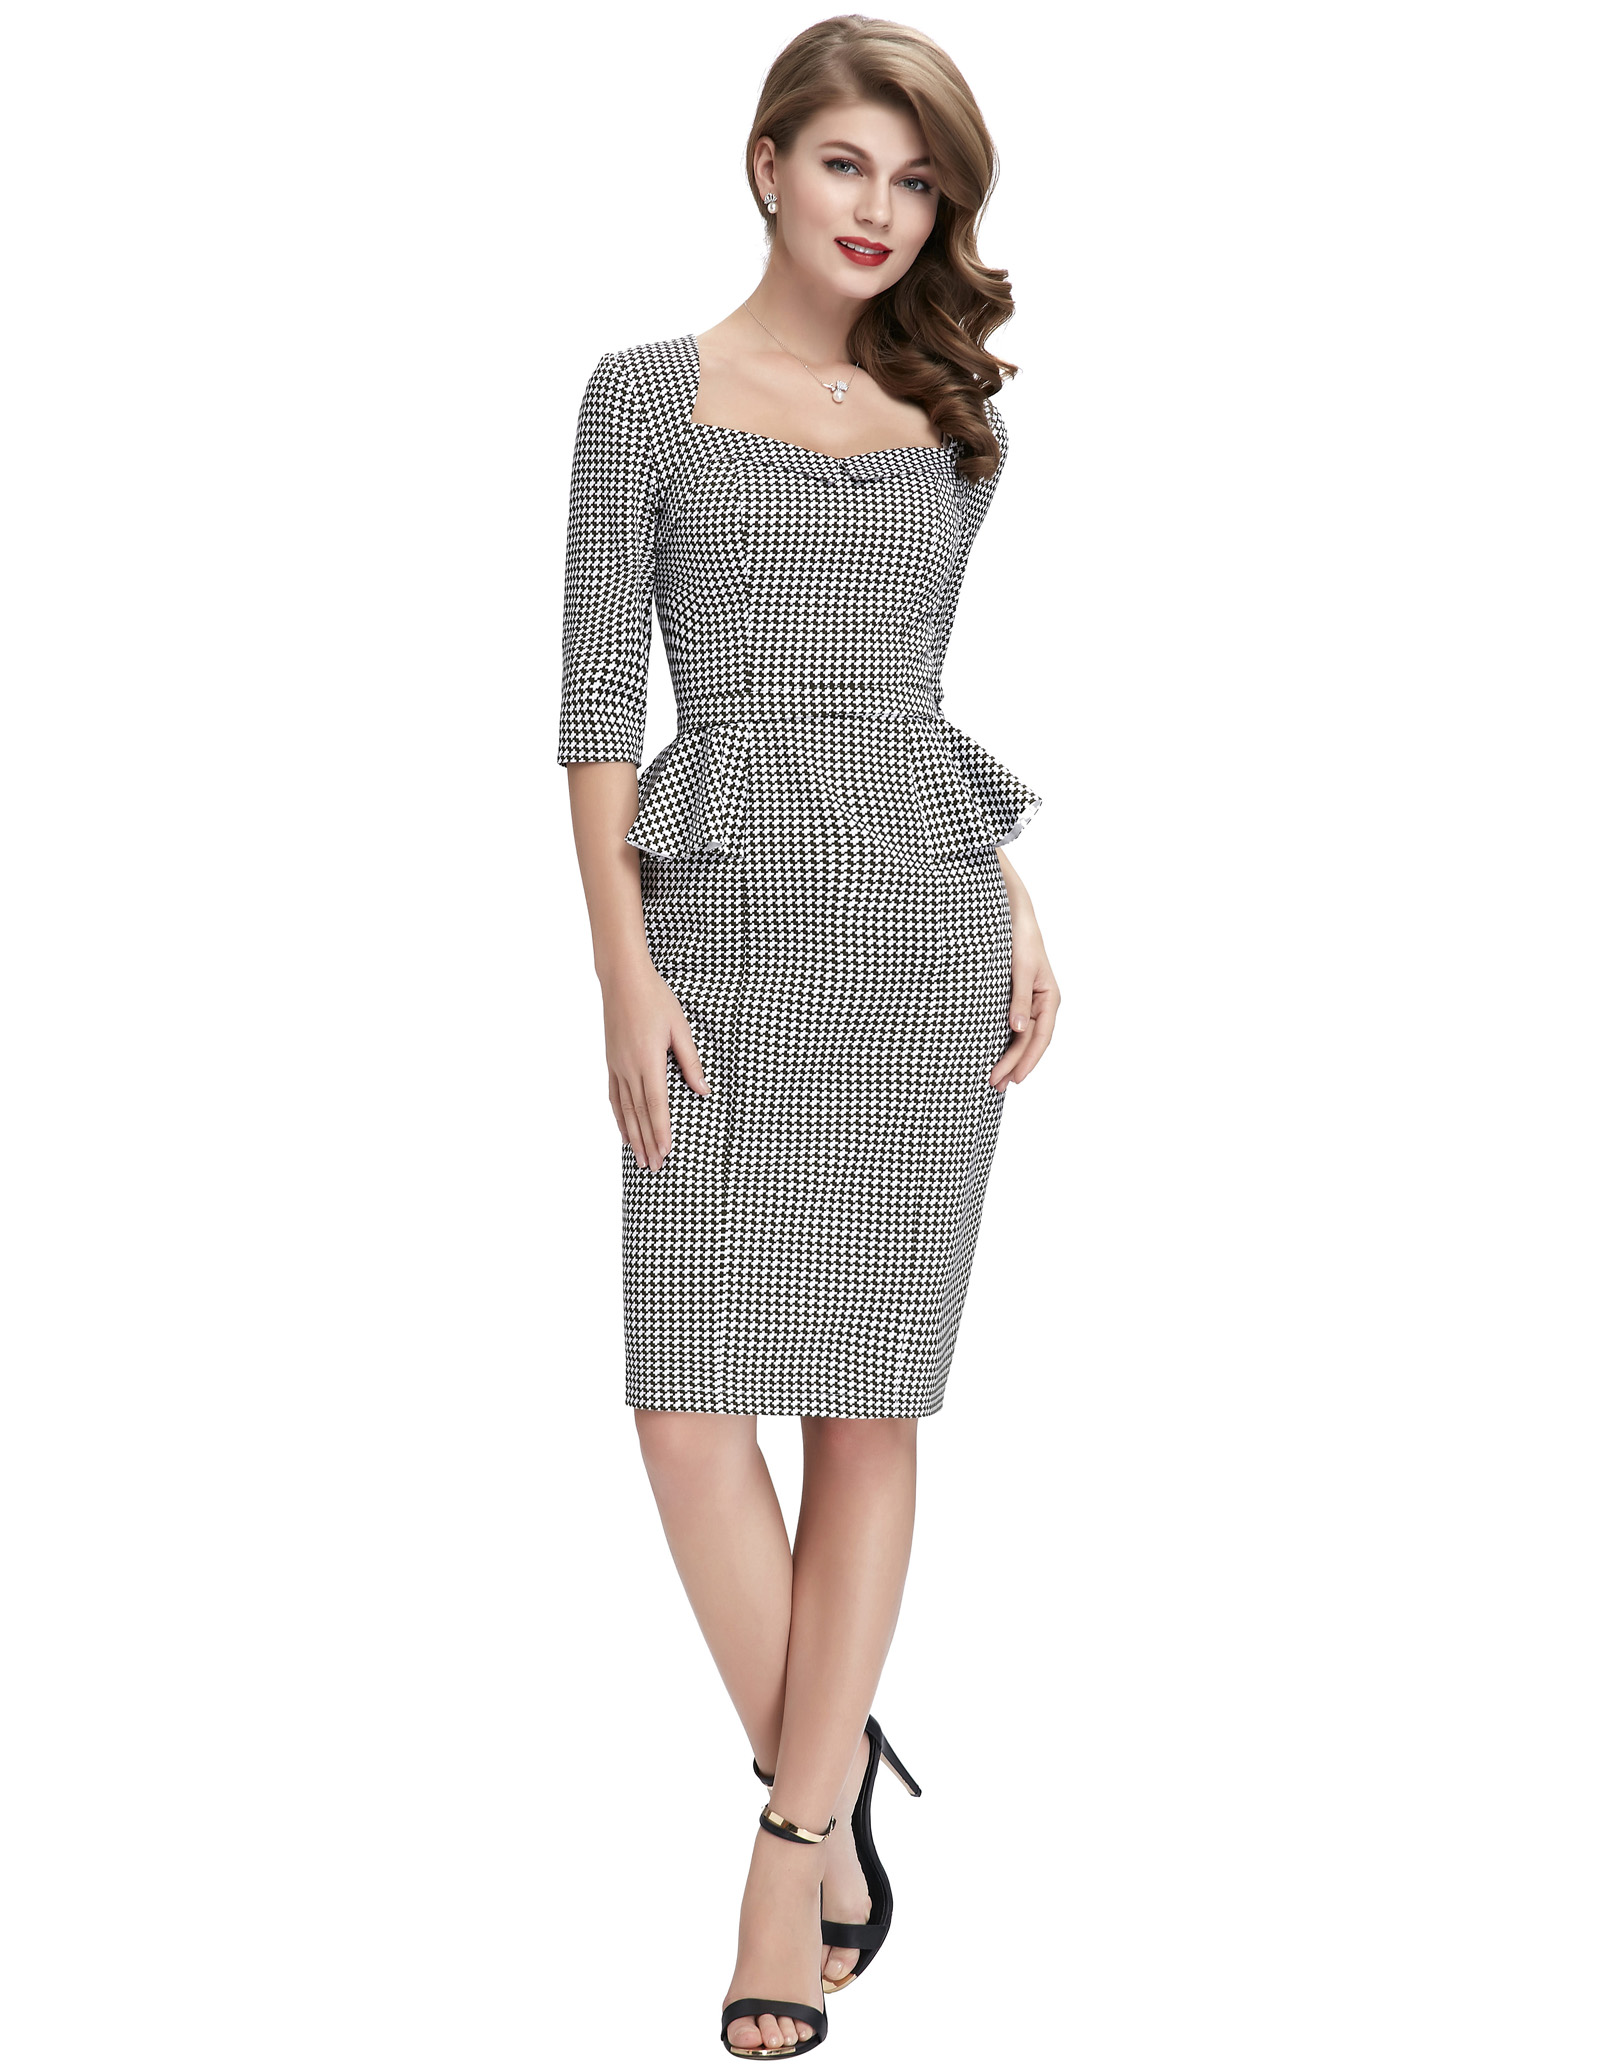 Vintage office work dress elegant women Half Sleeve Swallow Gird Pattern Cotton celebrity Bodycon Pencil slim warp Dress 8 Size